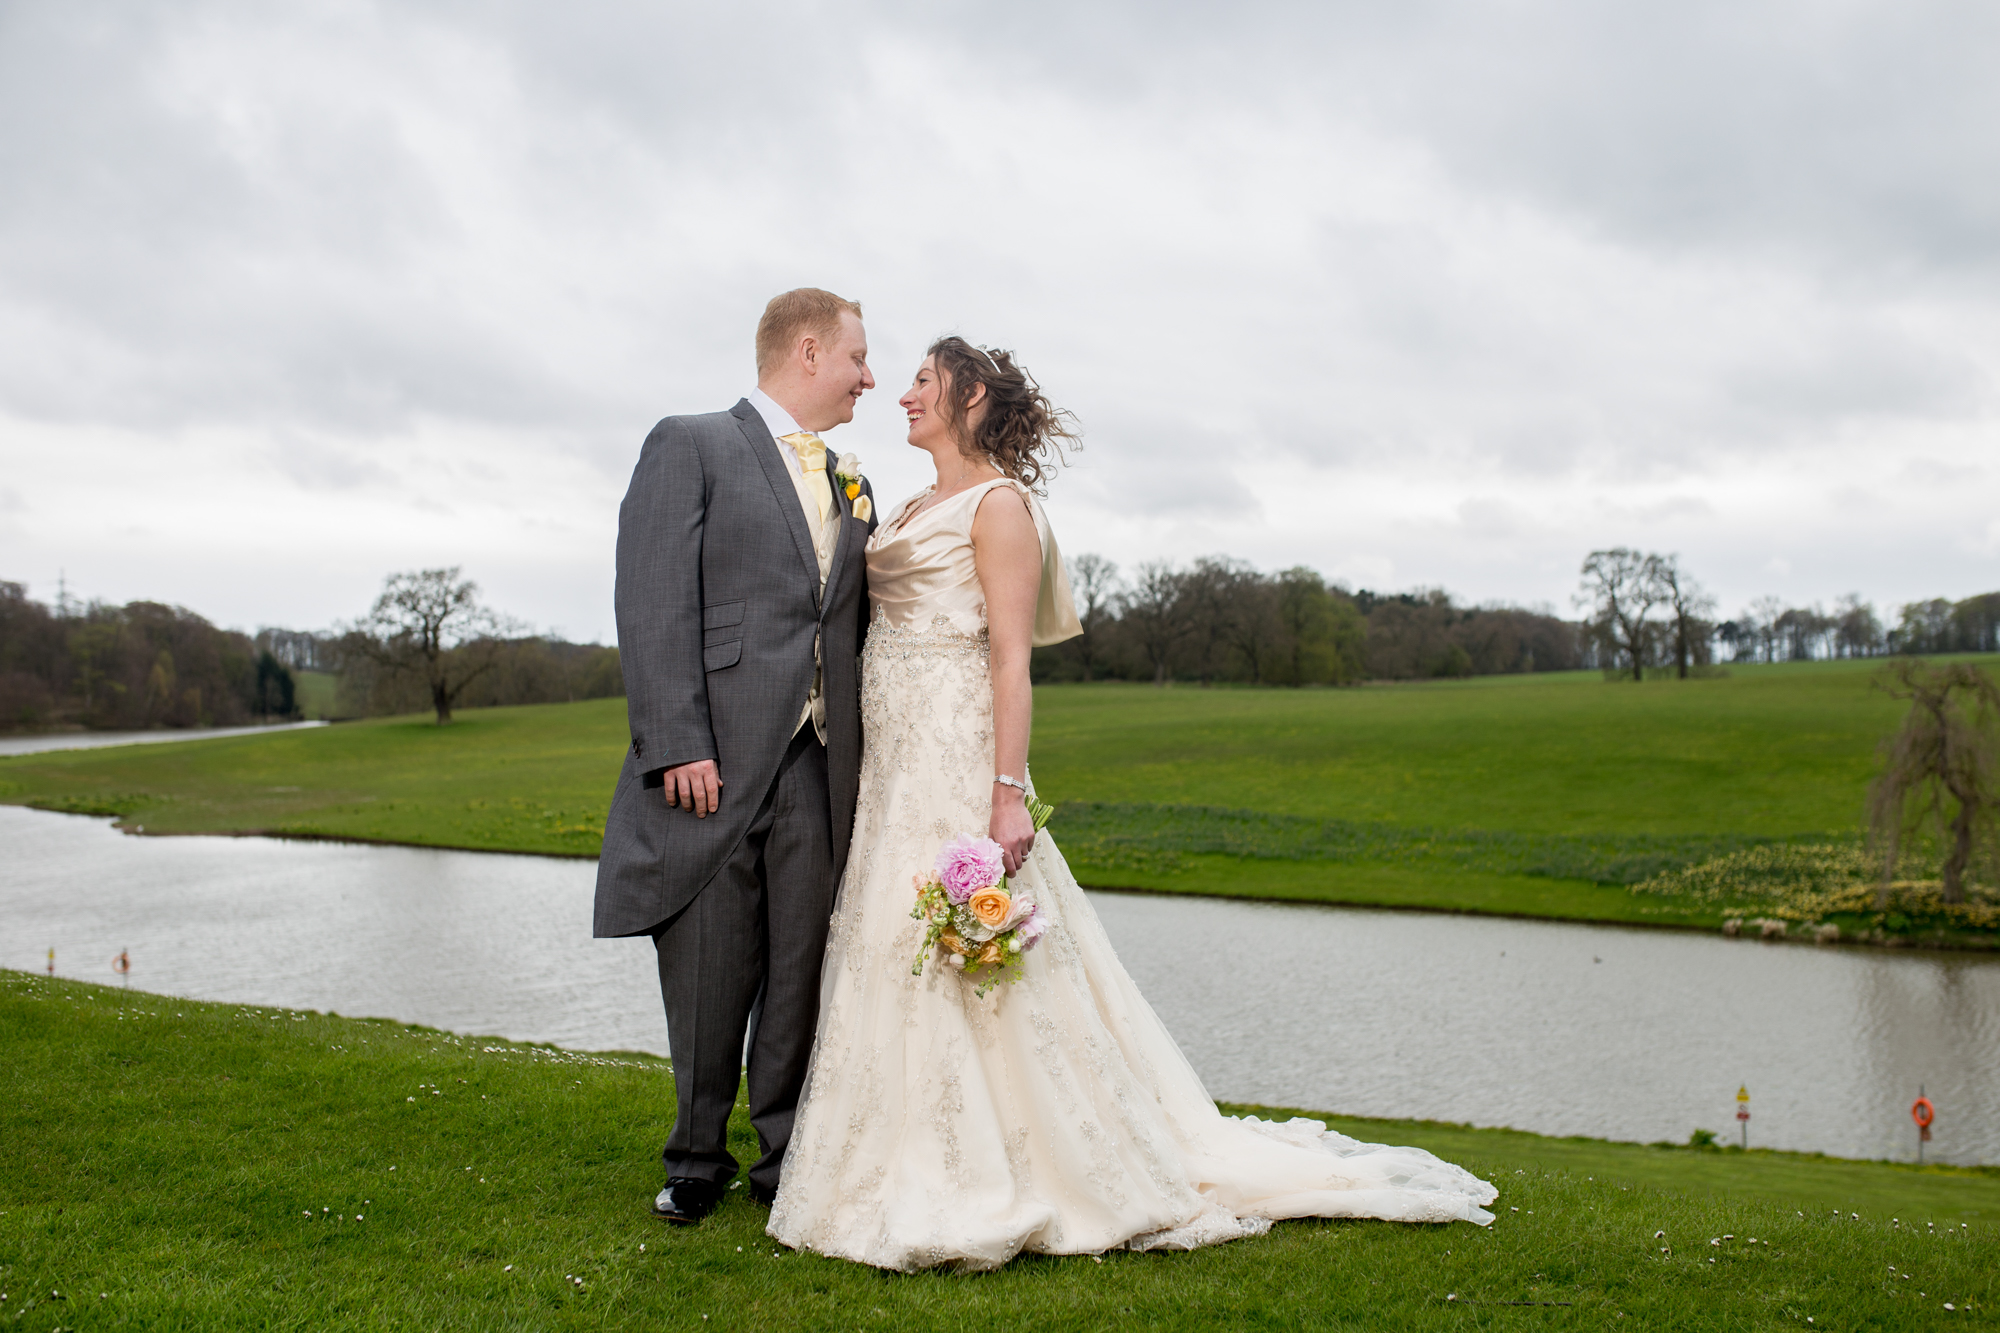 wynyard hall wedding photographer duncan mccall-1030.jpg